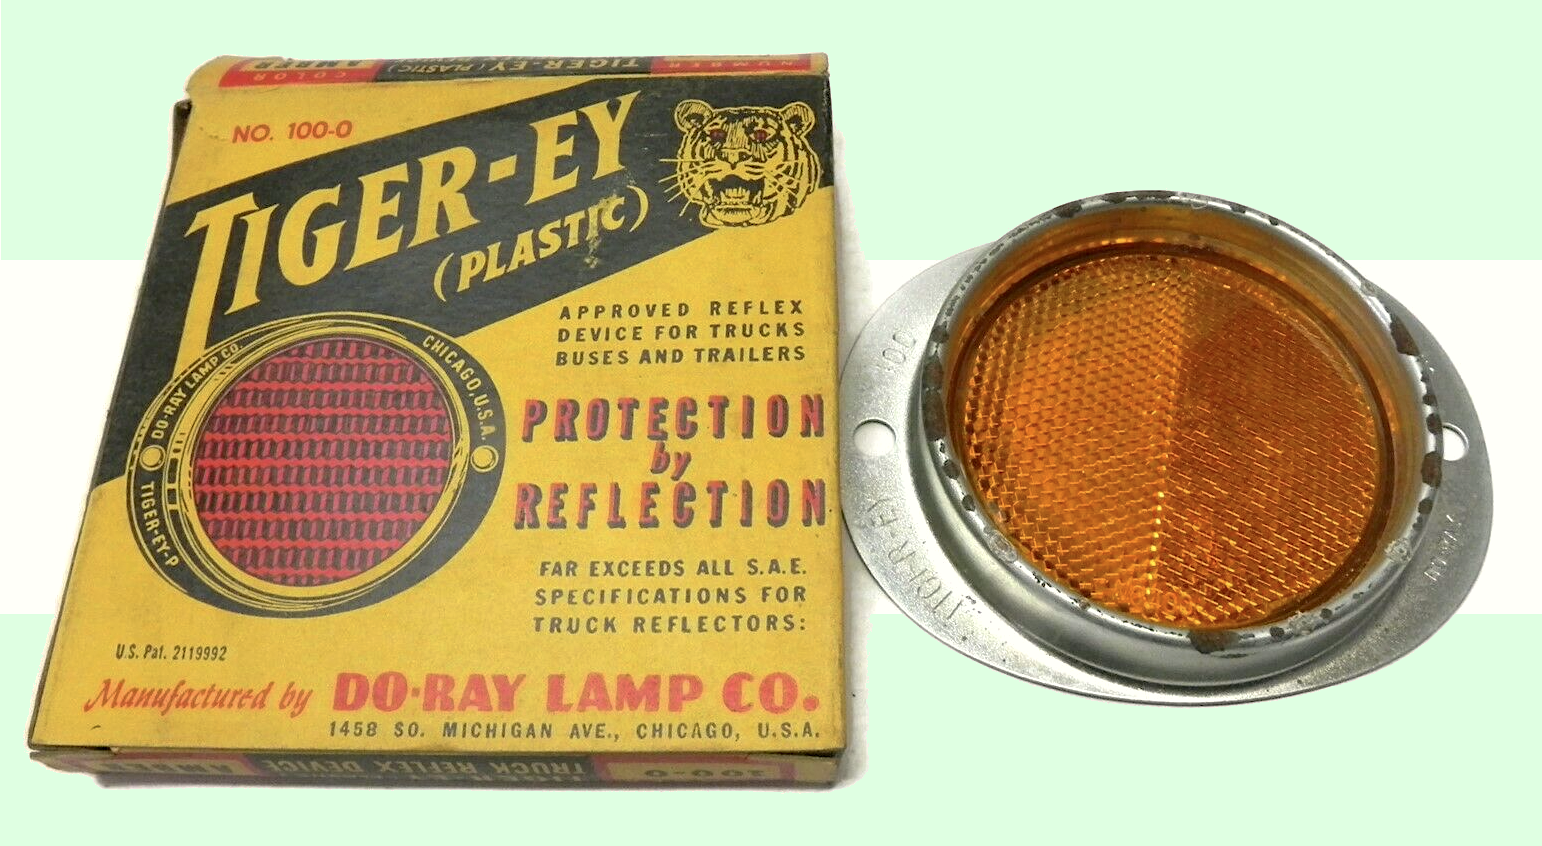 Do-Ray Lamp Co., est. 1920